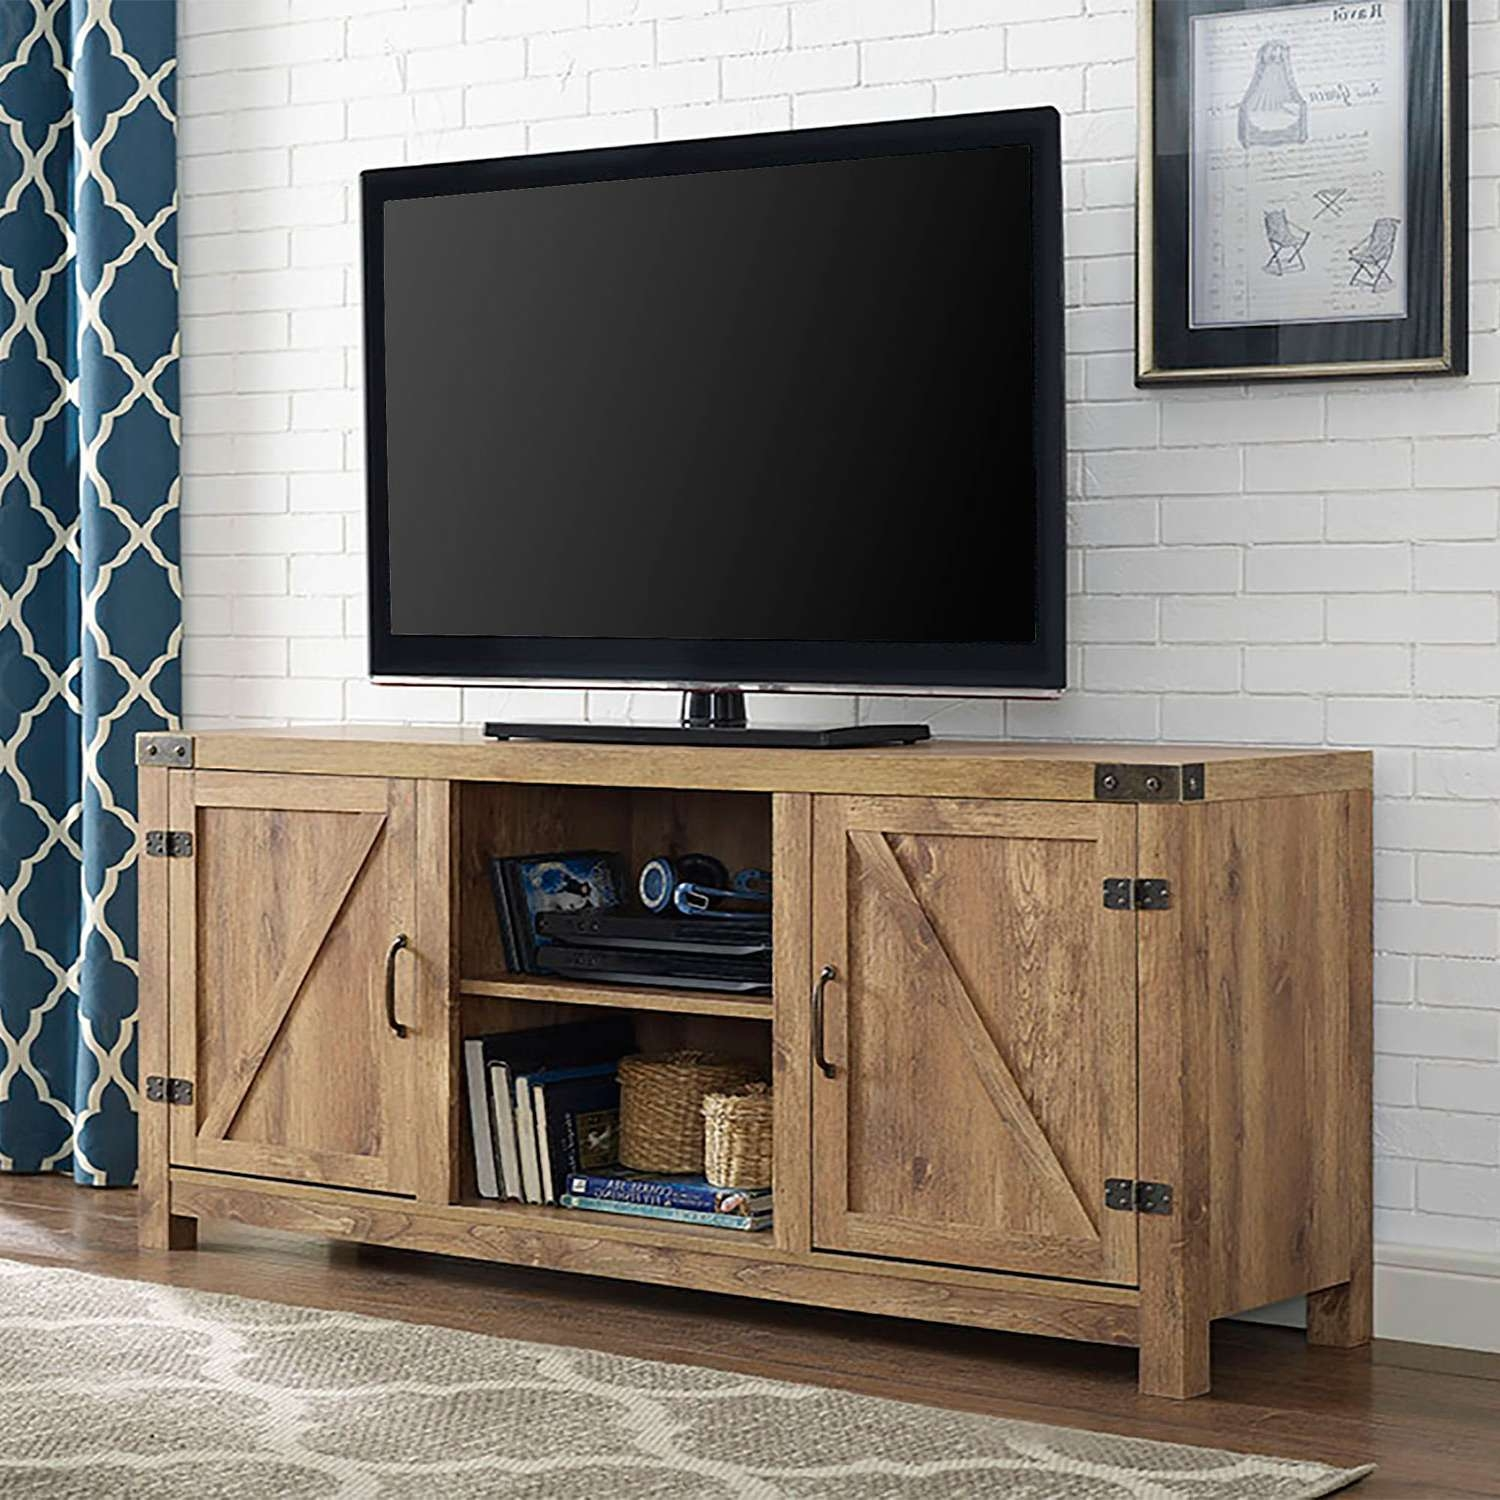 Tv Stands Under $100 For Under Tv Cabinets (View 20 of 20)